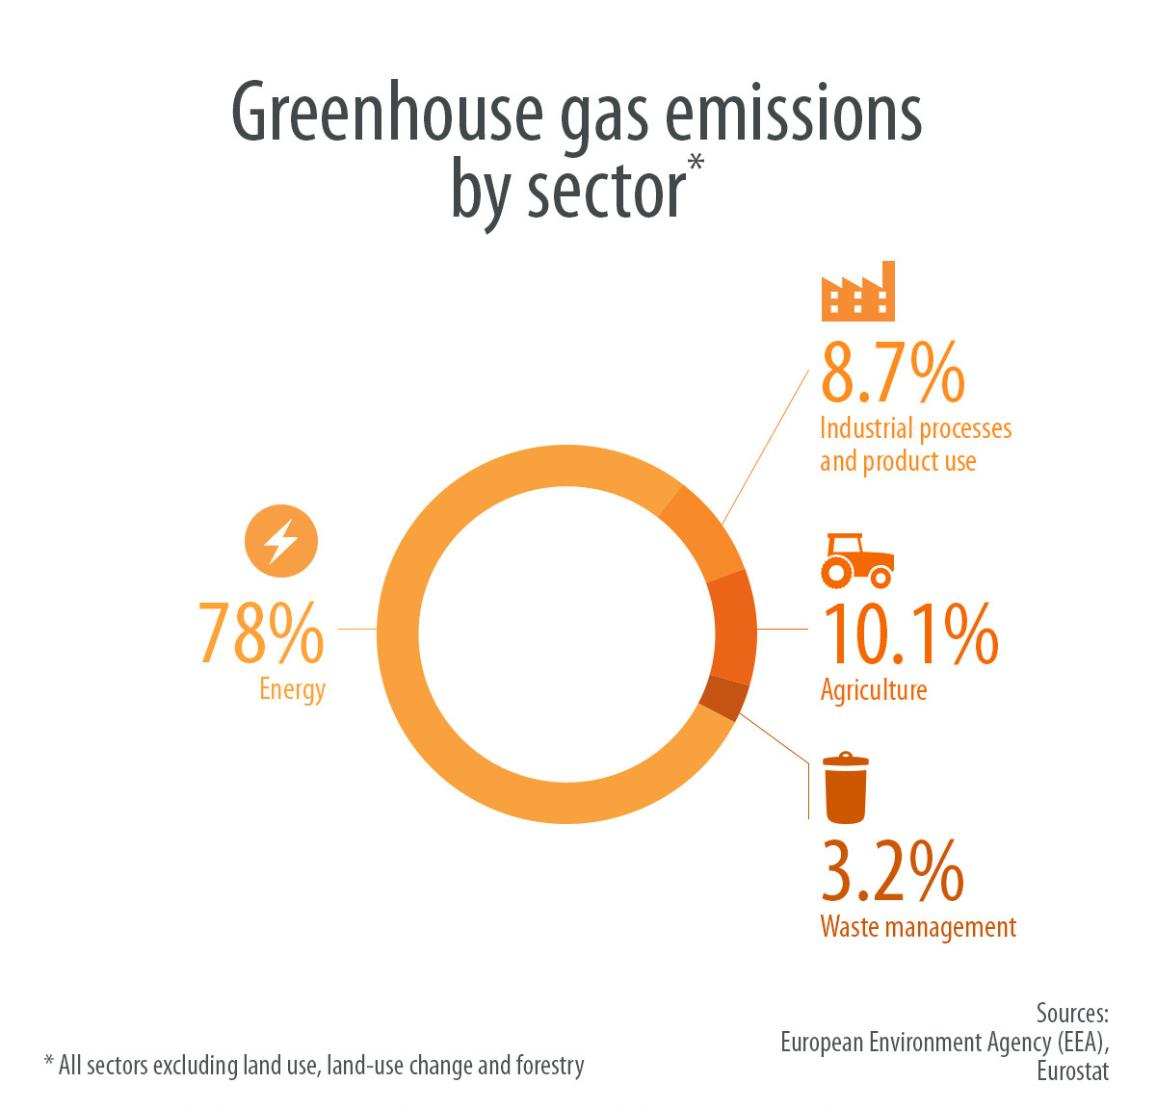 infographic: greenhouse gases emissions by sector in the EU in 2015